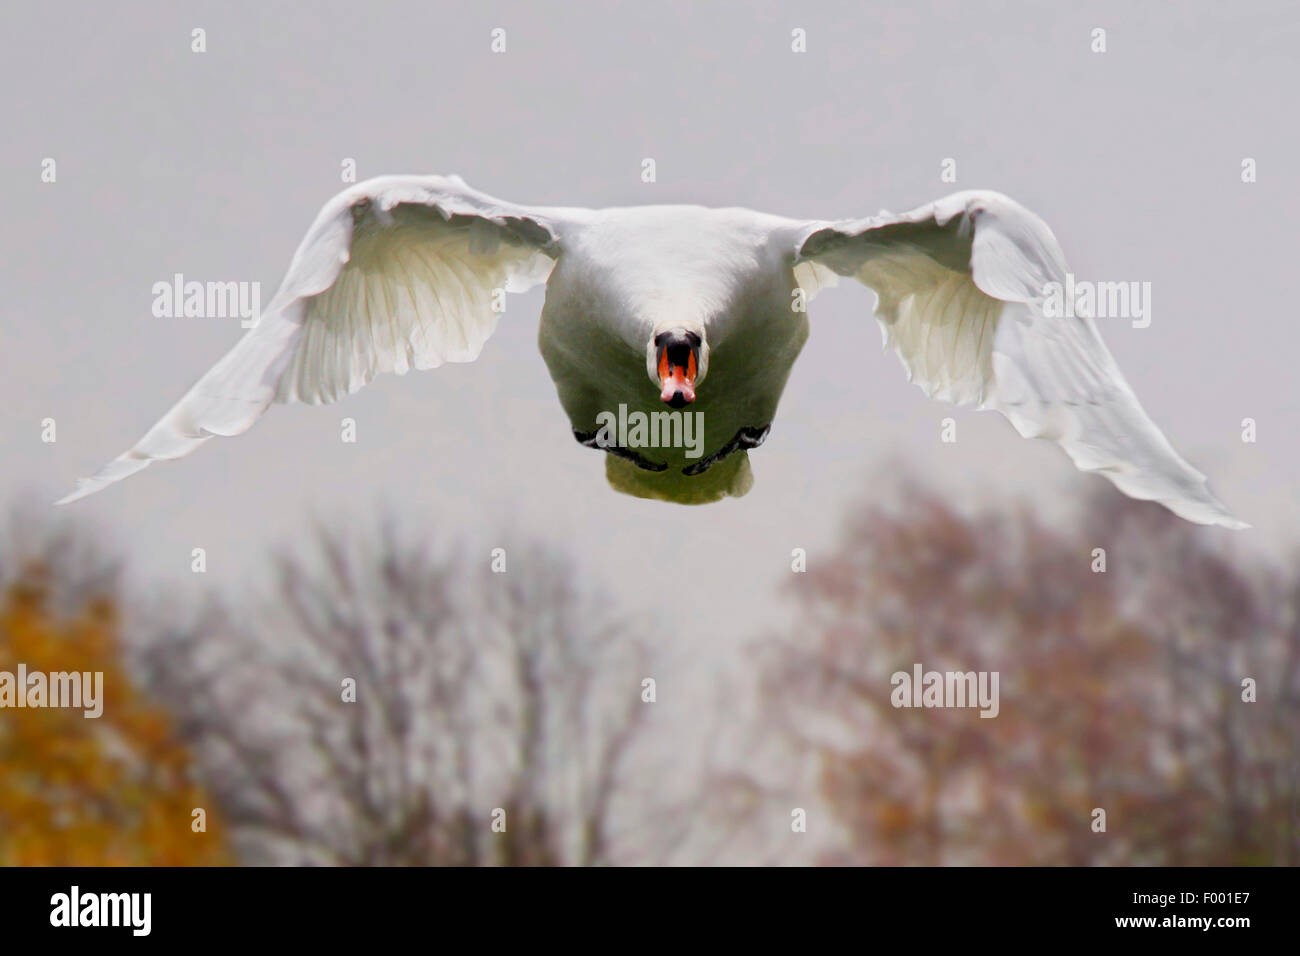 mute swan (Cygnus olor), in flight front view, Germany - Stock Image